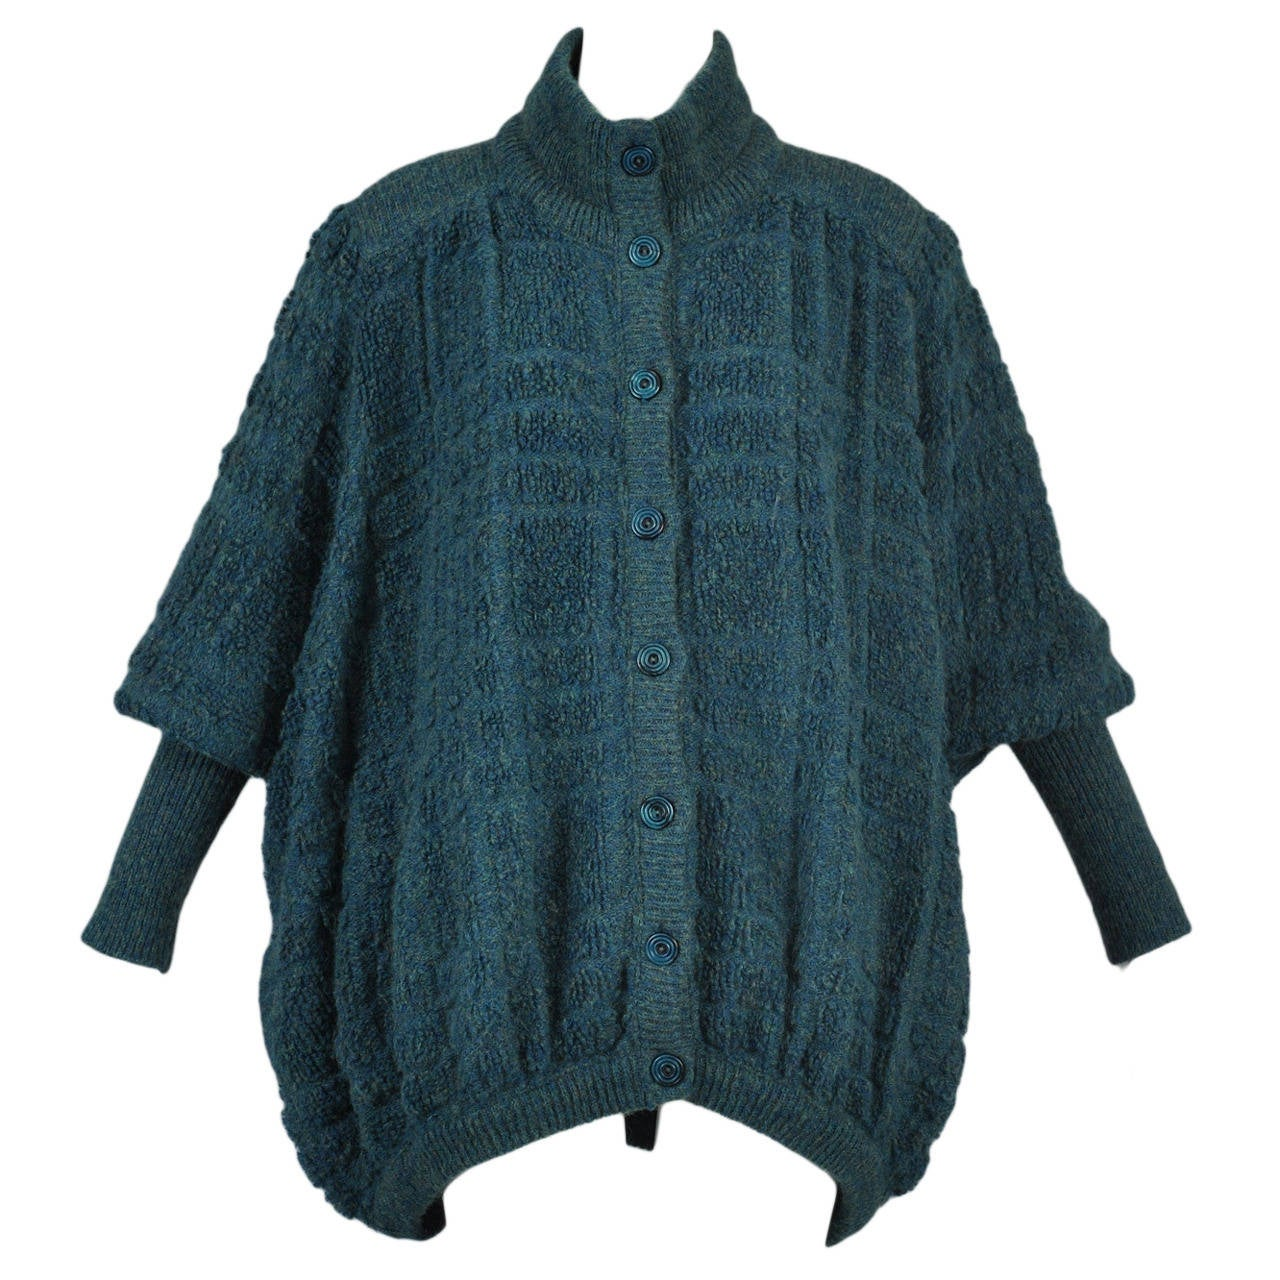 Oversized Chunky Knit Cardigan Pattern - Cashmere Sweater ...